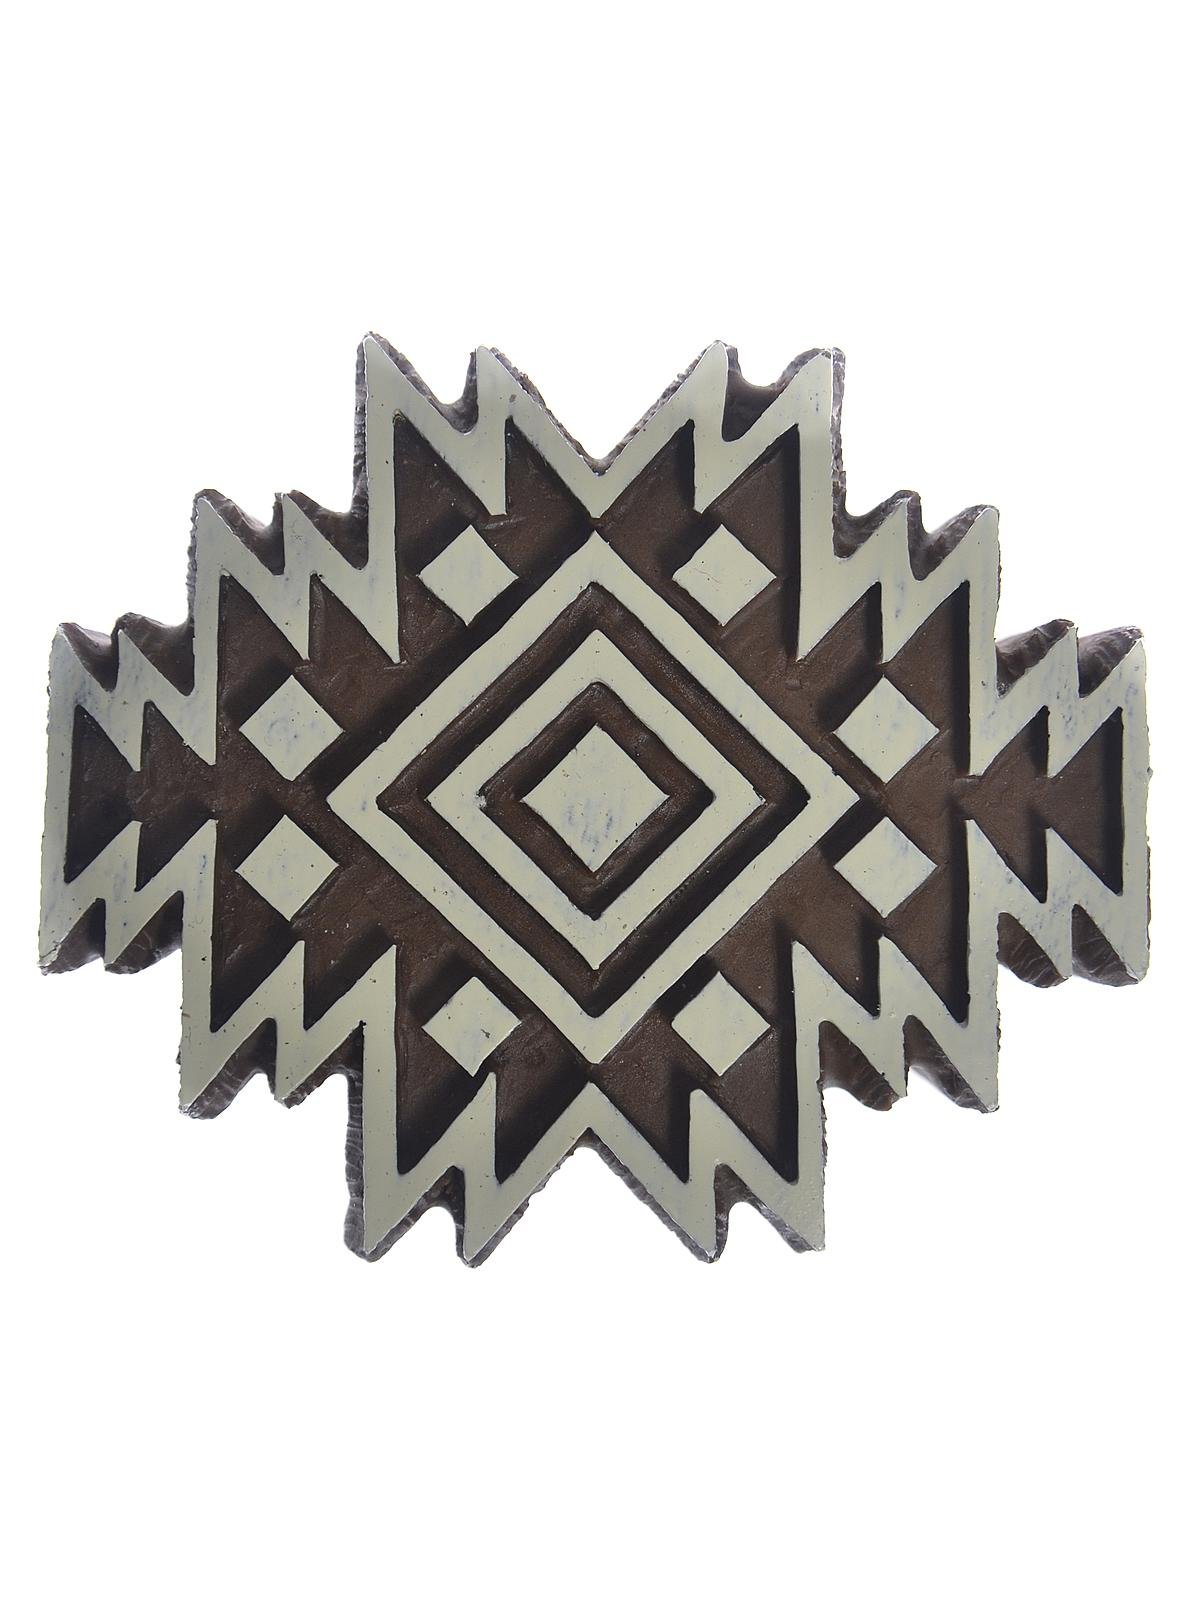 Plaid Fabric Creations Block Printing Stamps medium Aztec Tile each [PACK OF 4 ]